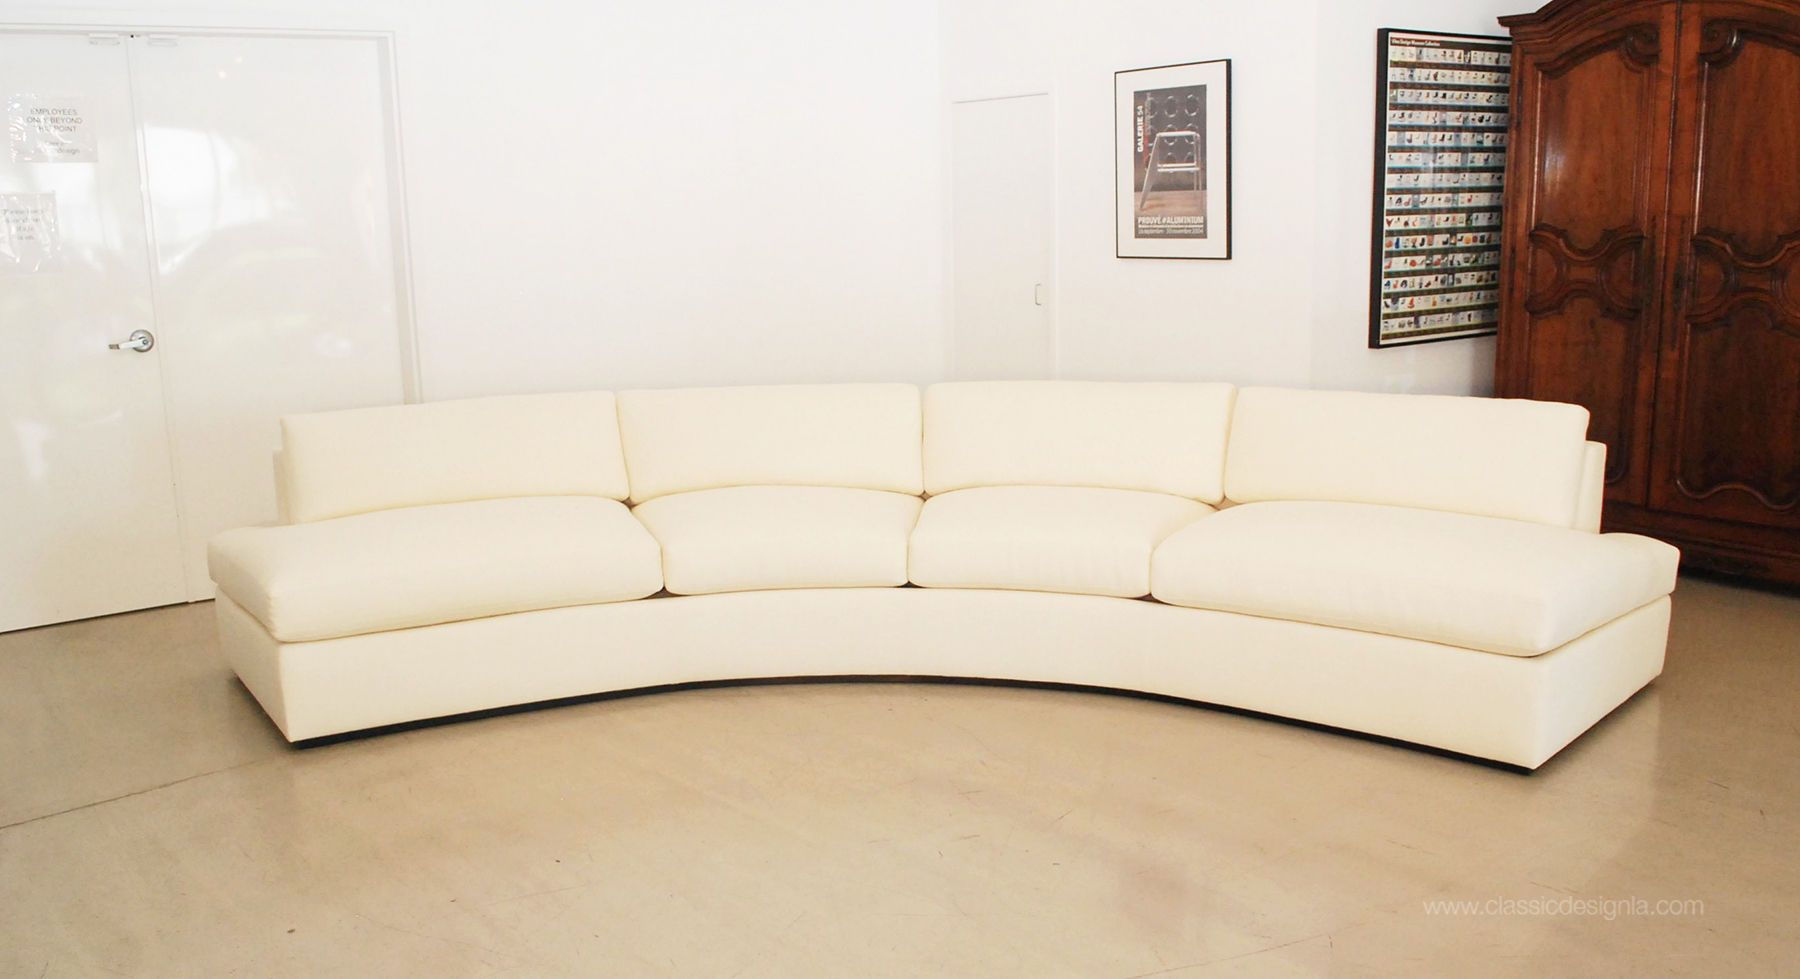 Milo Baughman inspired Curved Sofa